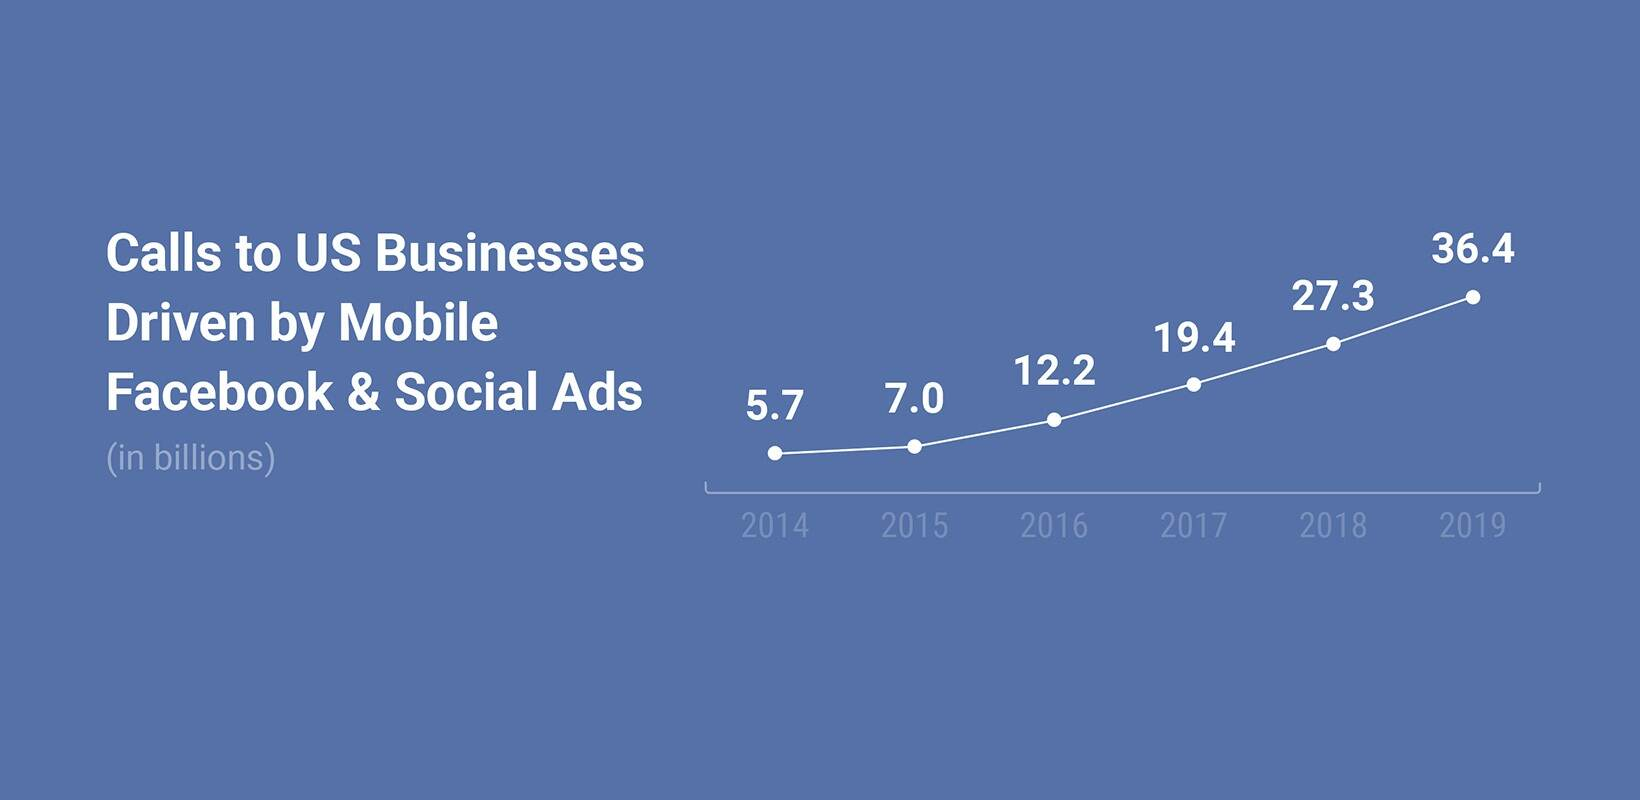 Facebook and social ads are driving an explosion of calls to US businesses